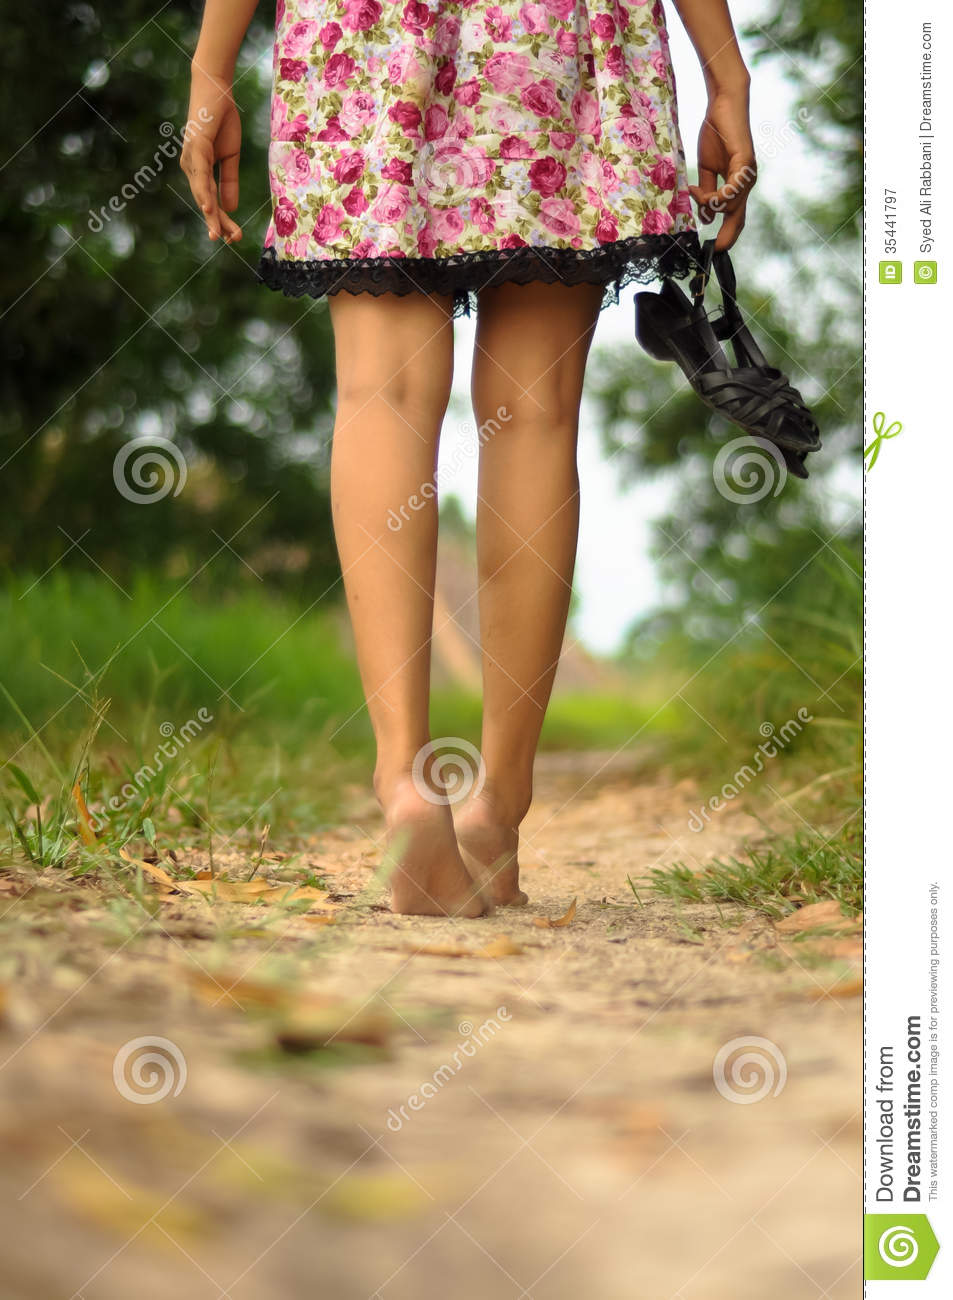 Lady Walking Away Barefoot Stock Images - Download 57 Royalty Free Photos 83308f13351b